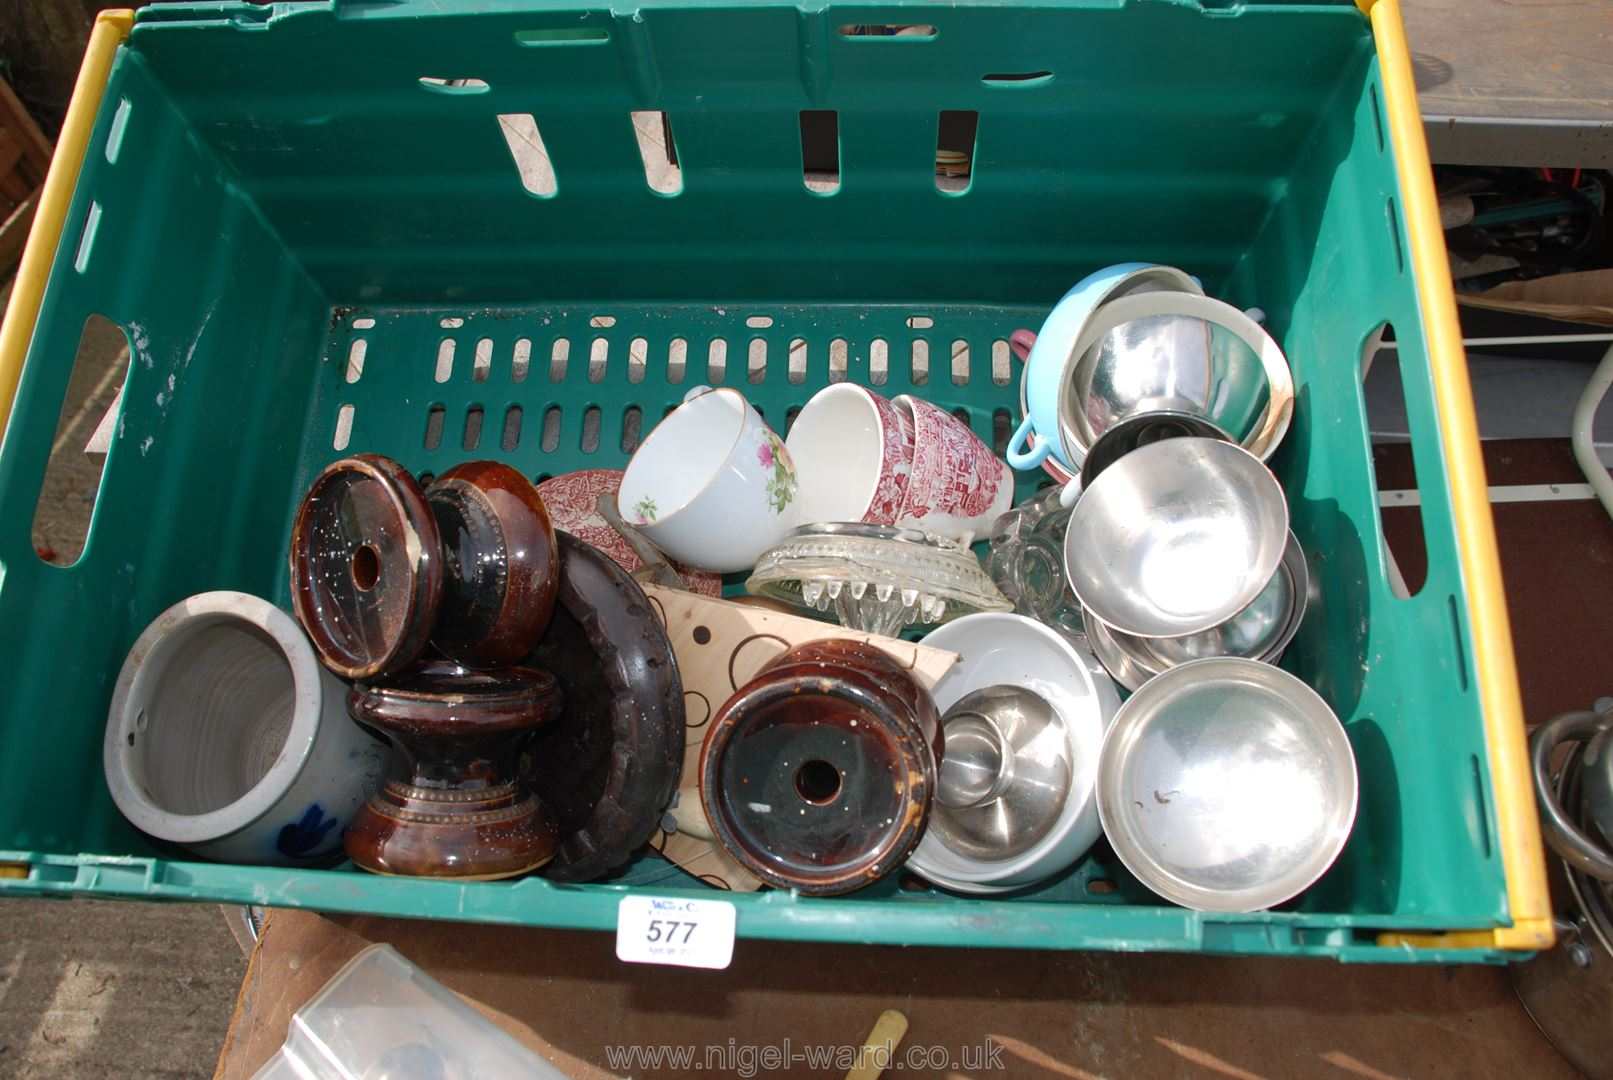 Tray of steaming pans, sundae dishes, cutlery etc. - Image 4 of 4